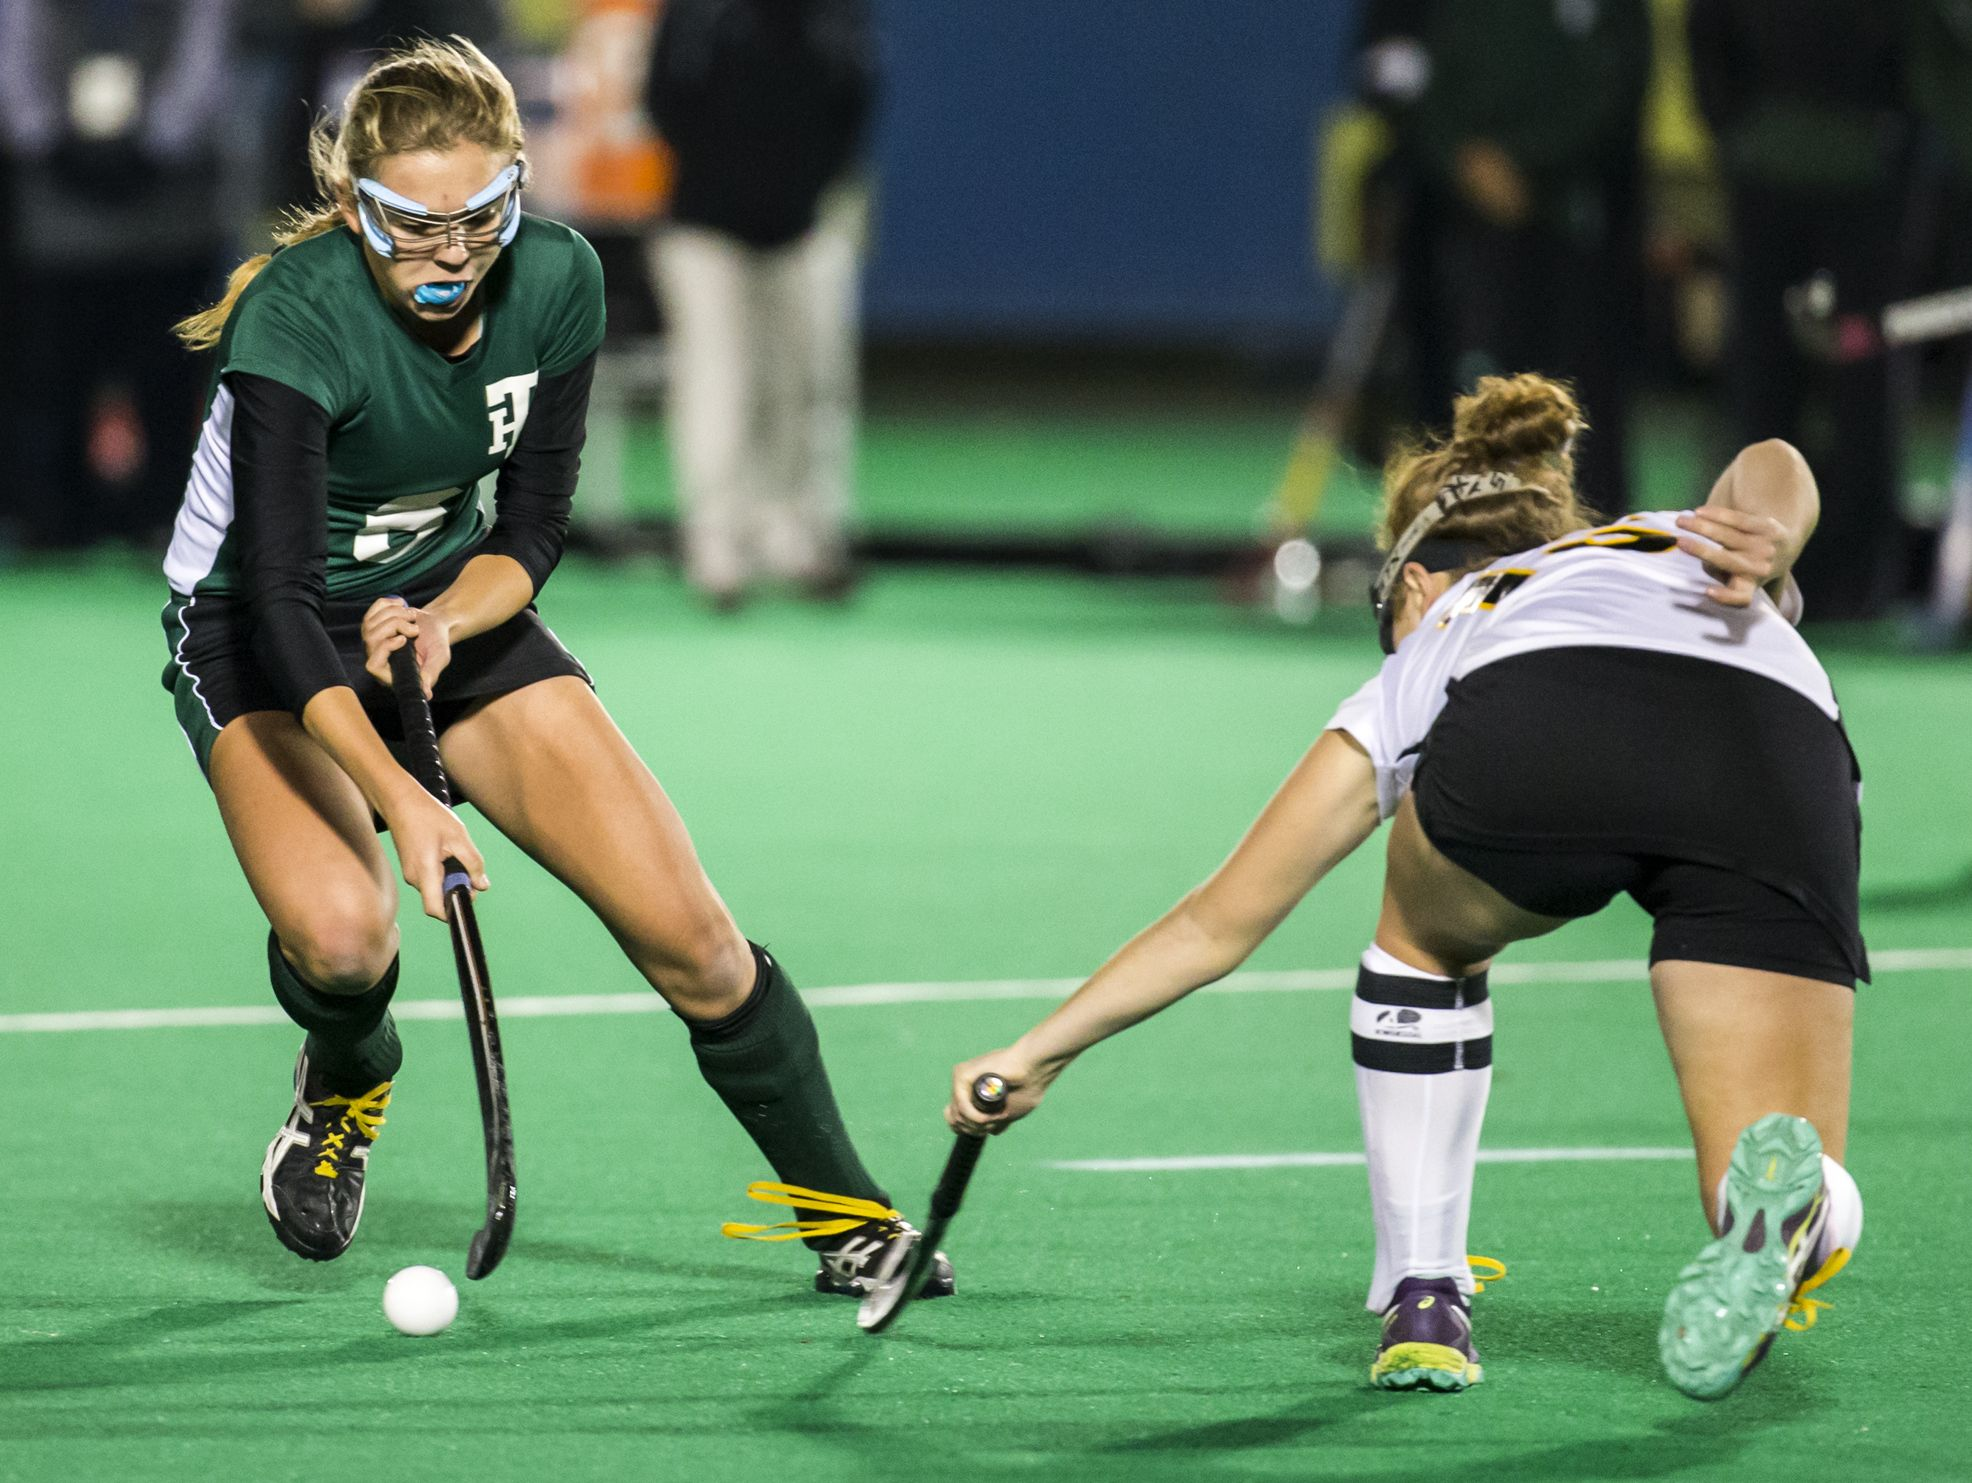 Tower Hill's Isabelle Pilson (left) cuts past Padua's Susan Stepek (right) in the second half of Tower Hill's 4-0 win over Padua in their DIAA state tournament semi-final game at the University of Delaware in Newark on Tuesday night.